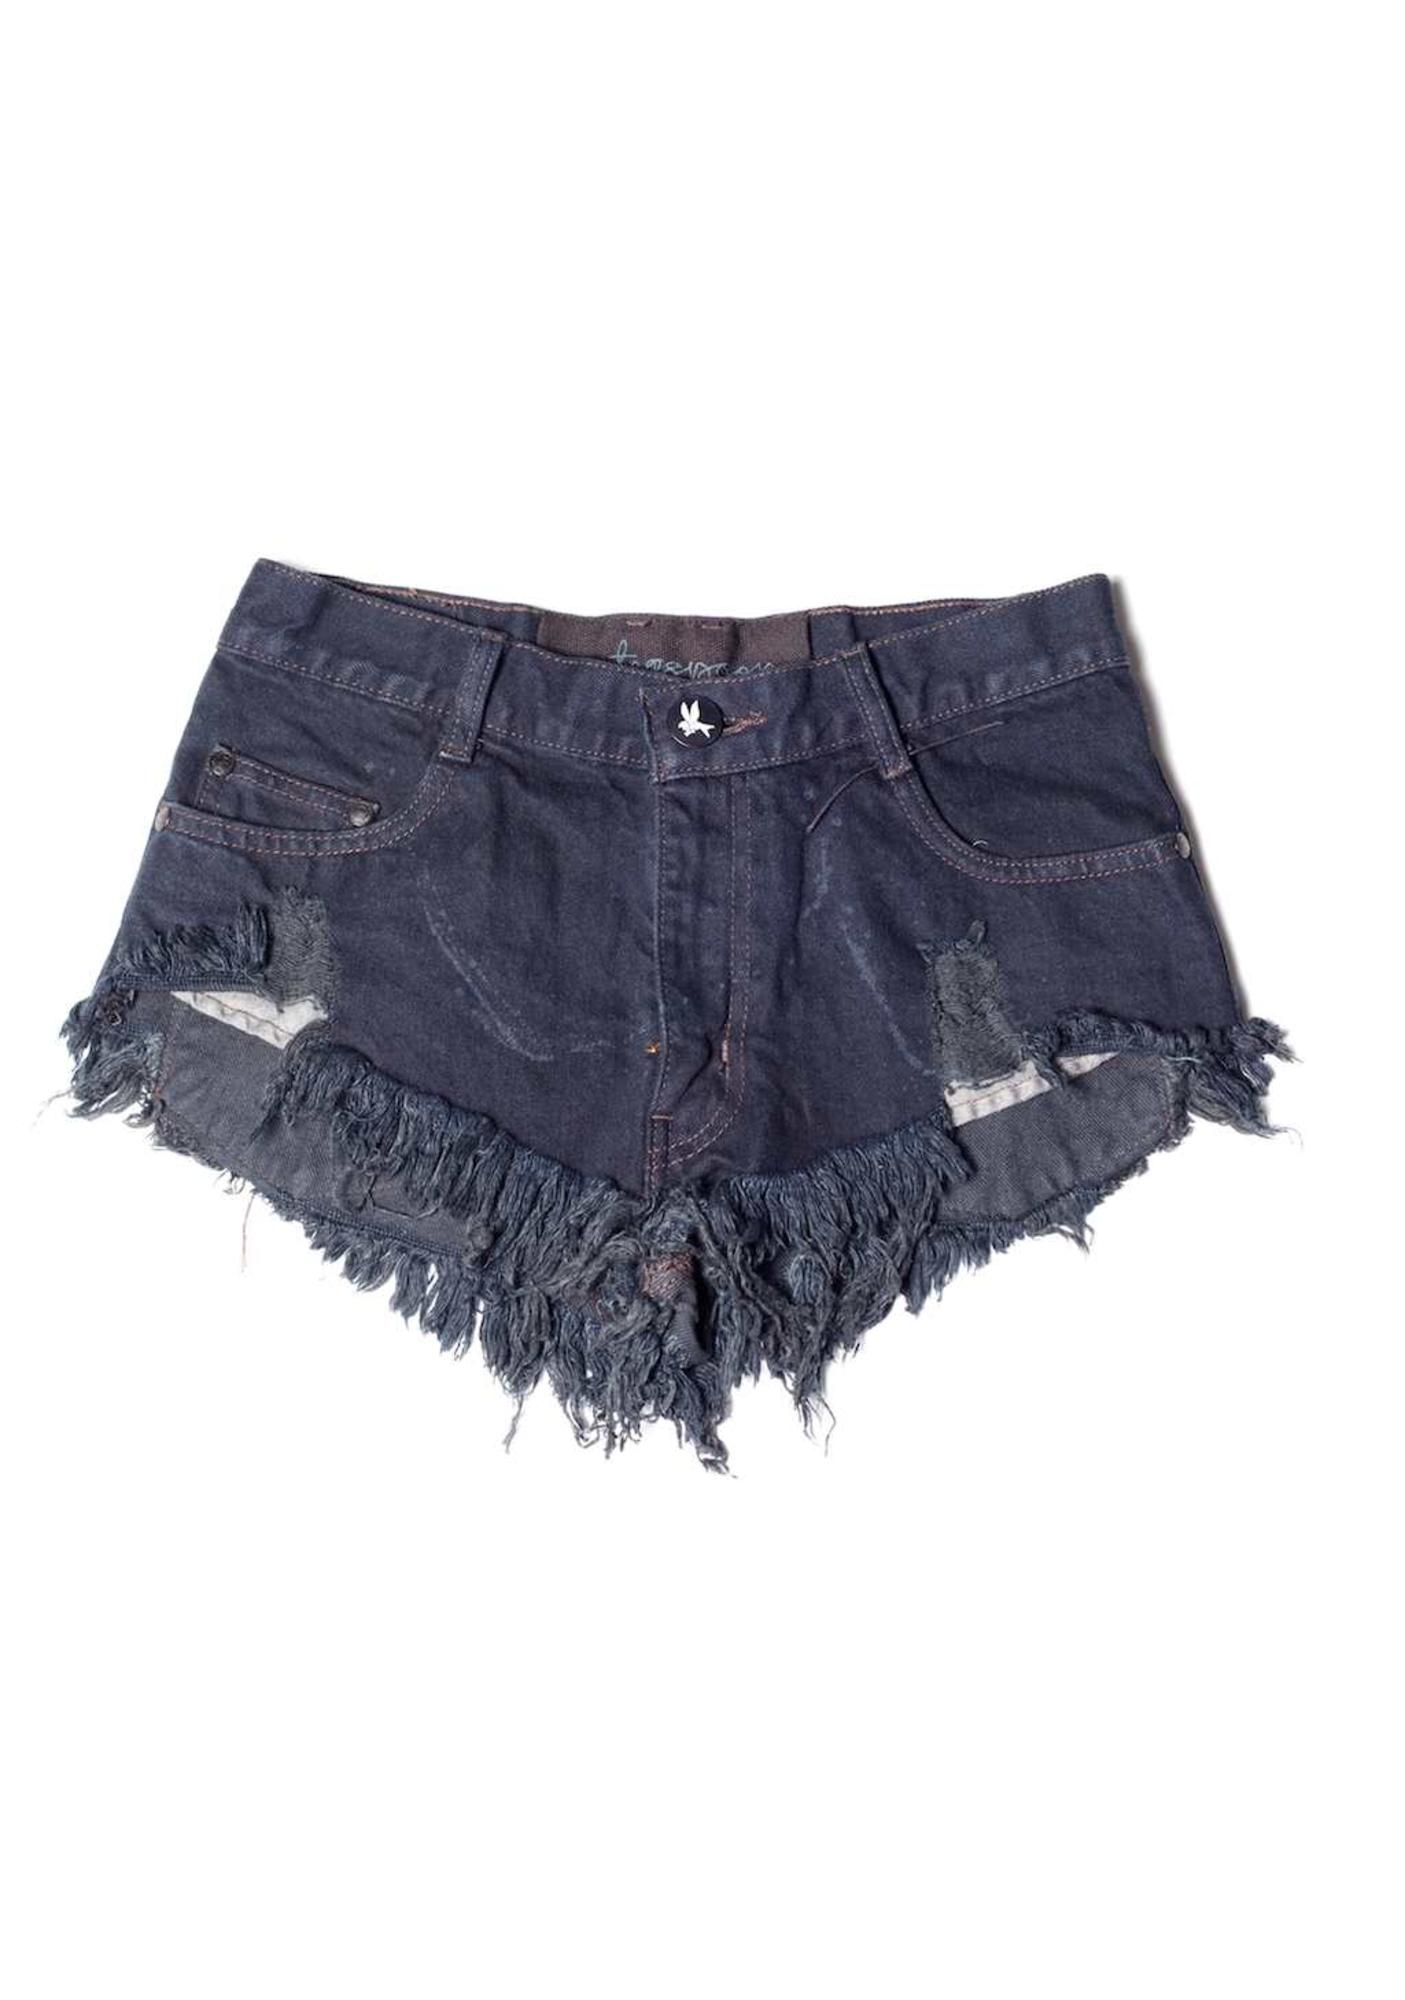 One Teaspoon Original Roller Shorts